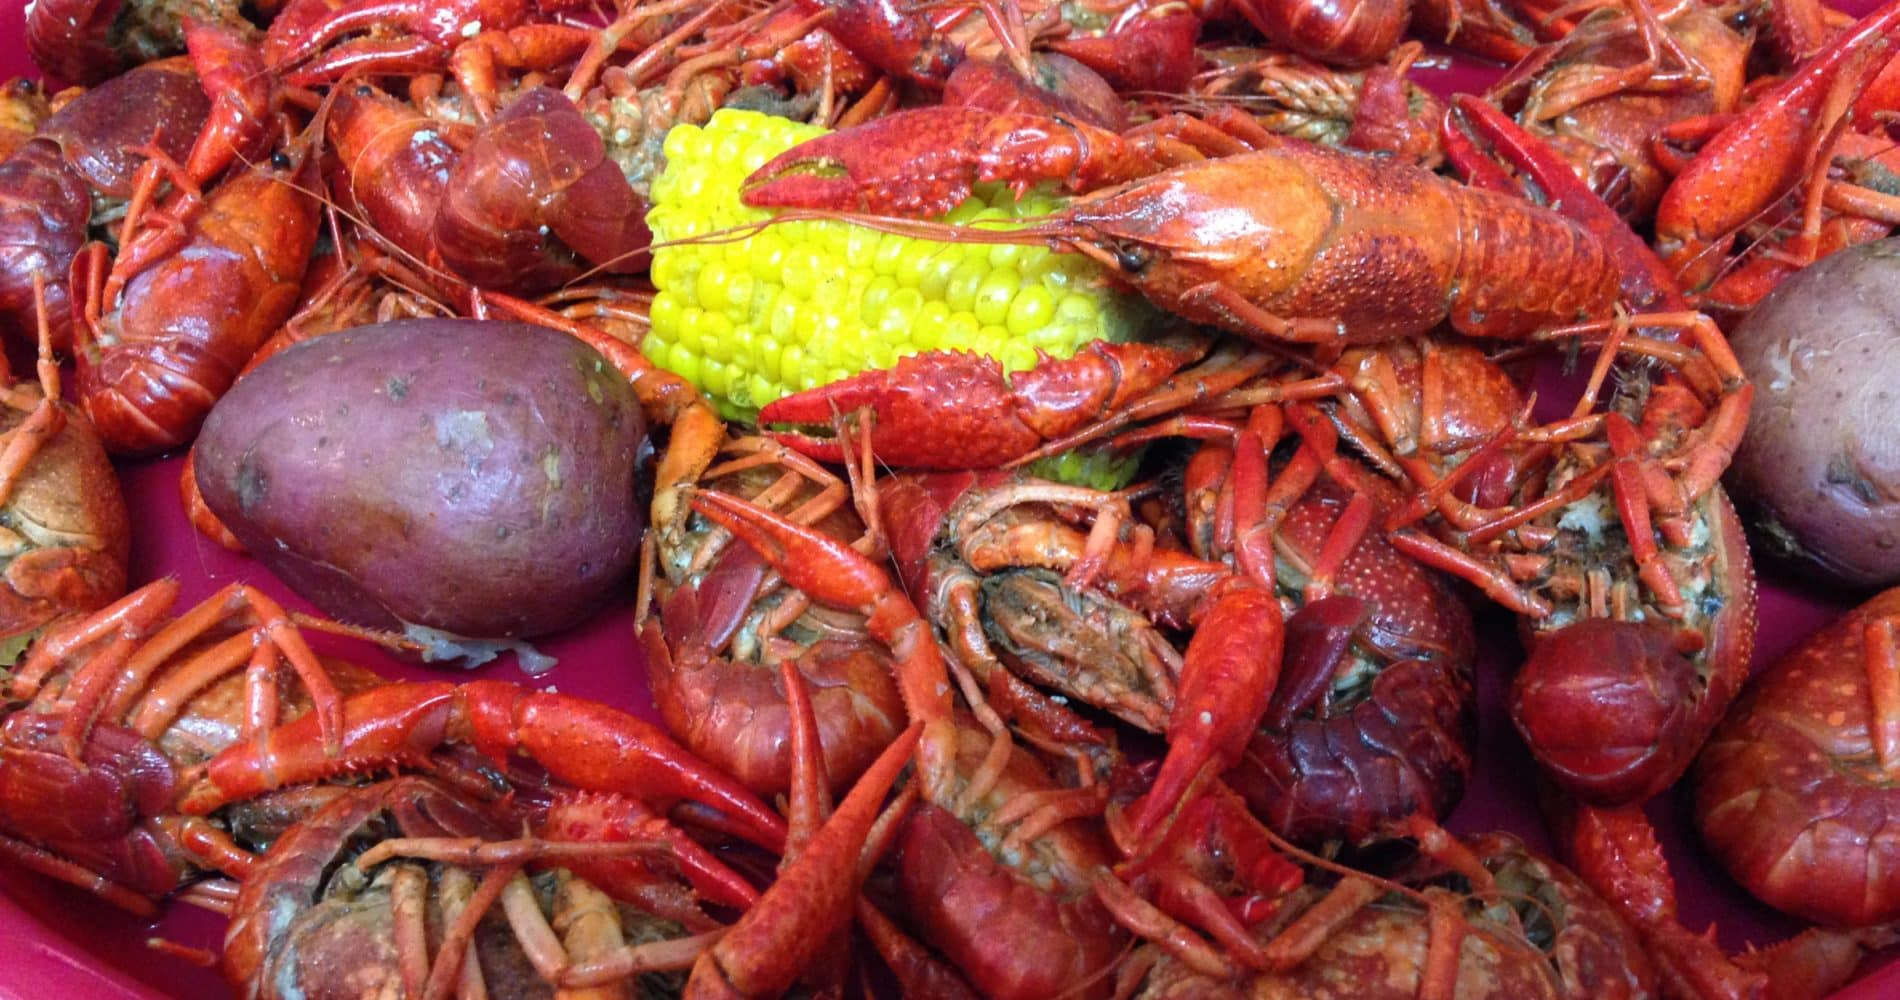 Boiled crawfish, potatoes, corn in a red platter